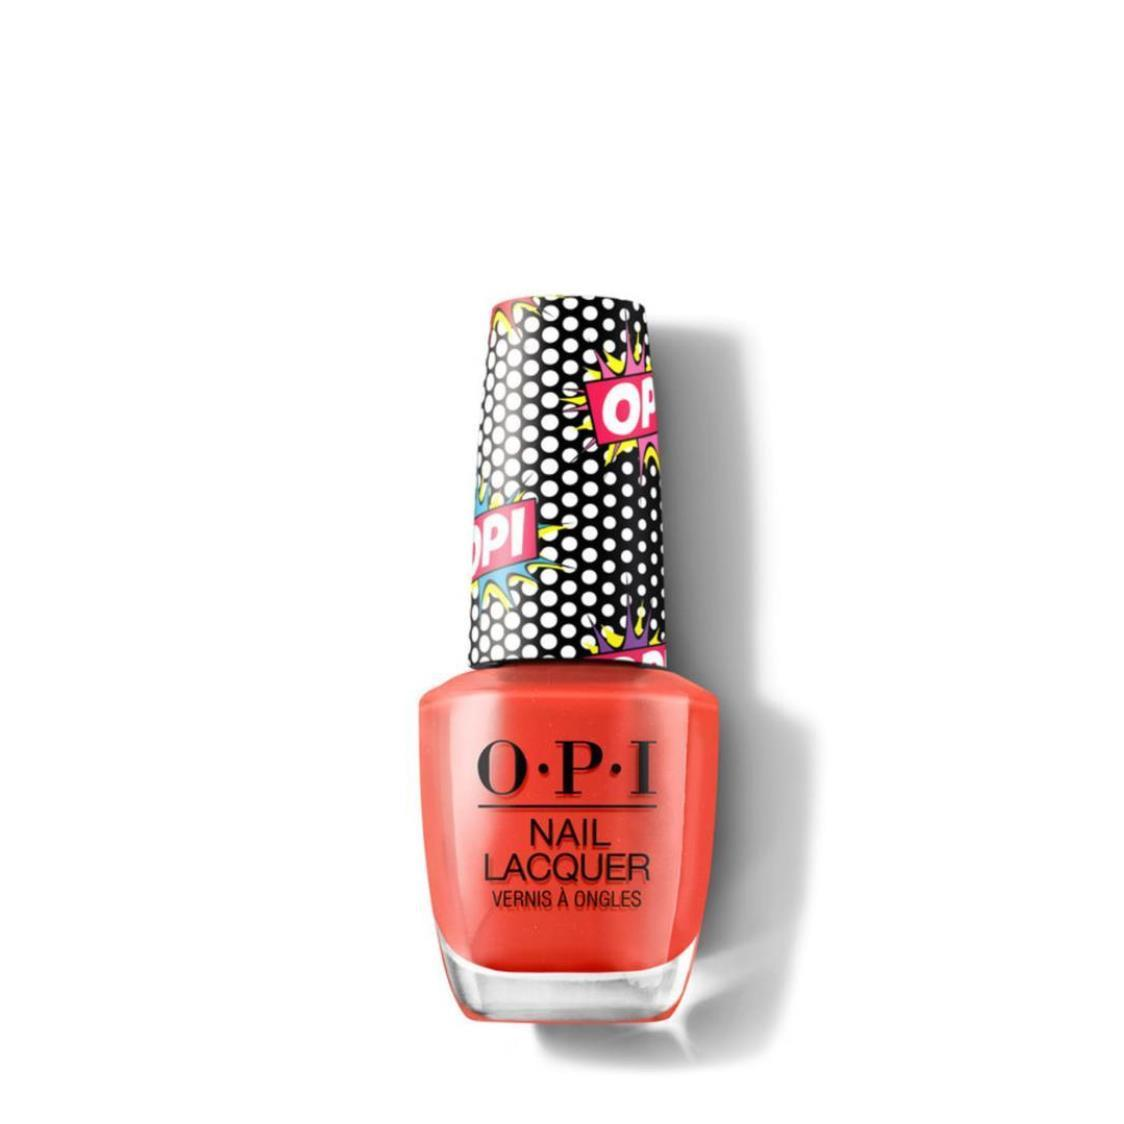 Opi Bubbles Collection 2018 Nail Lacquer OPI Pops 15ml